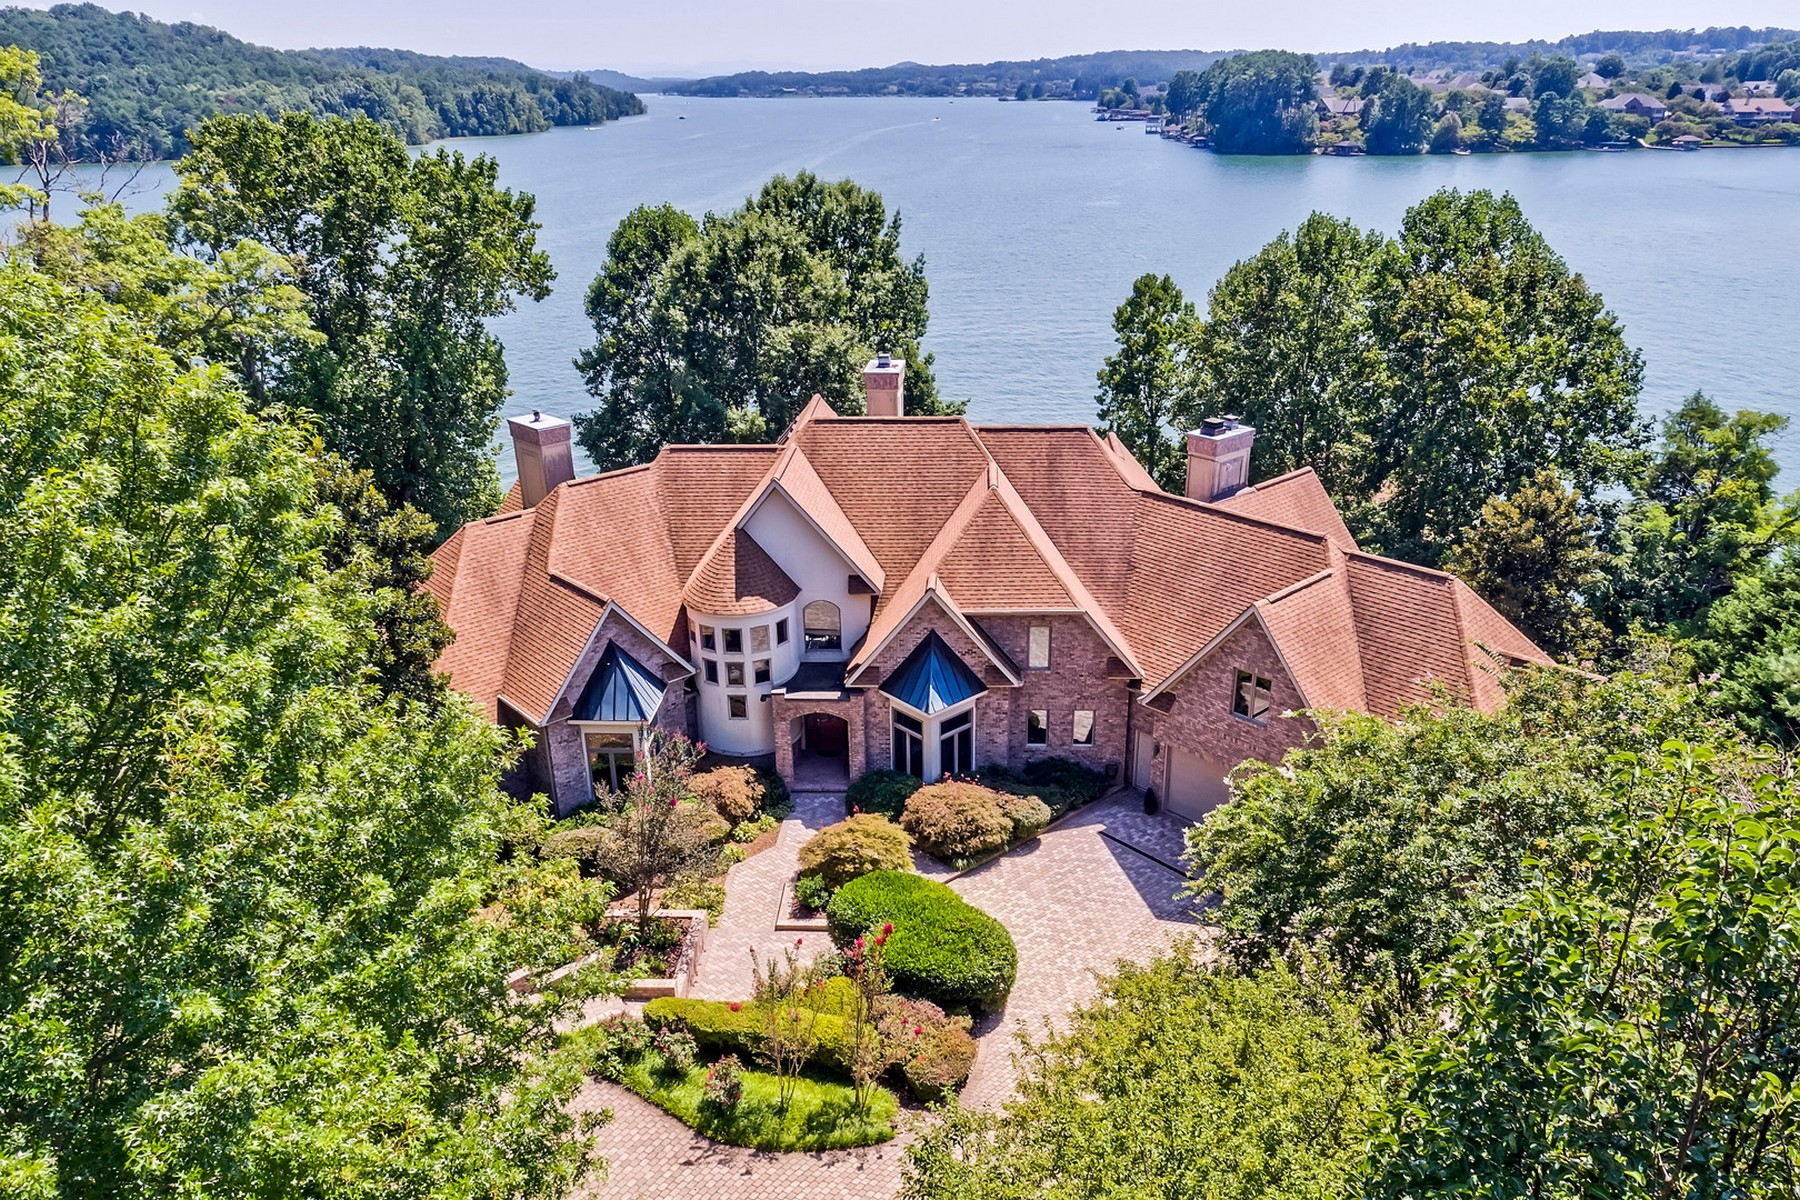 Single Family Home for Sale at Lakefront Home With Majestic Views 234 Tecumseh Way Loudon, Tennessee 37774 United States